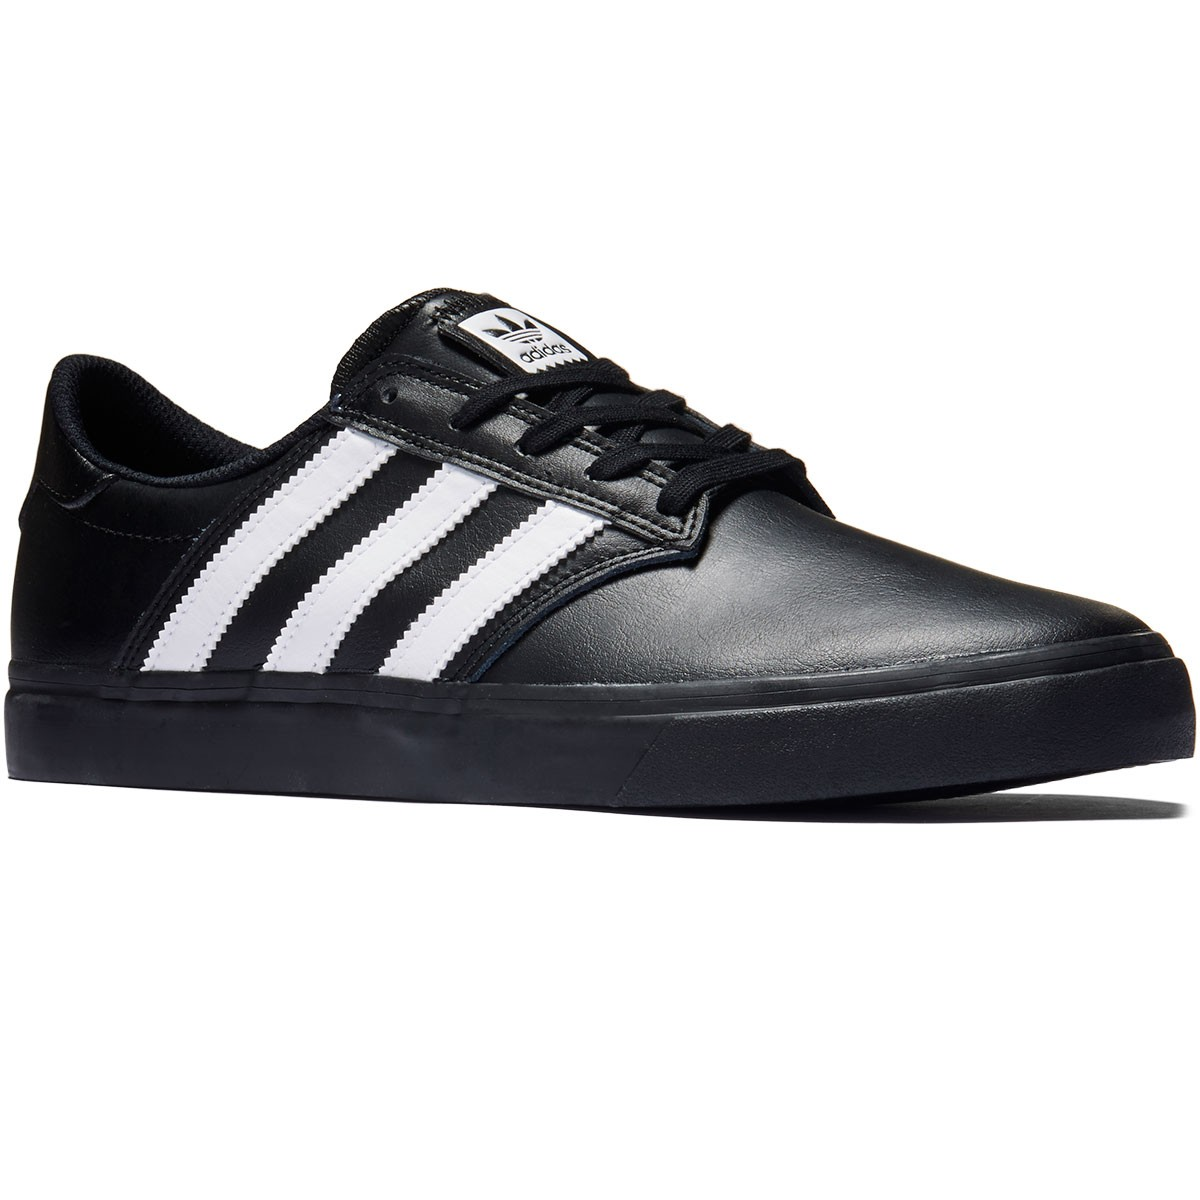 Adidas Seeley Outdoor Shoes